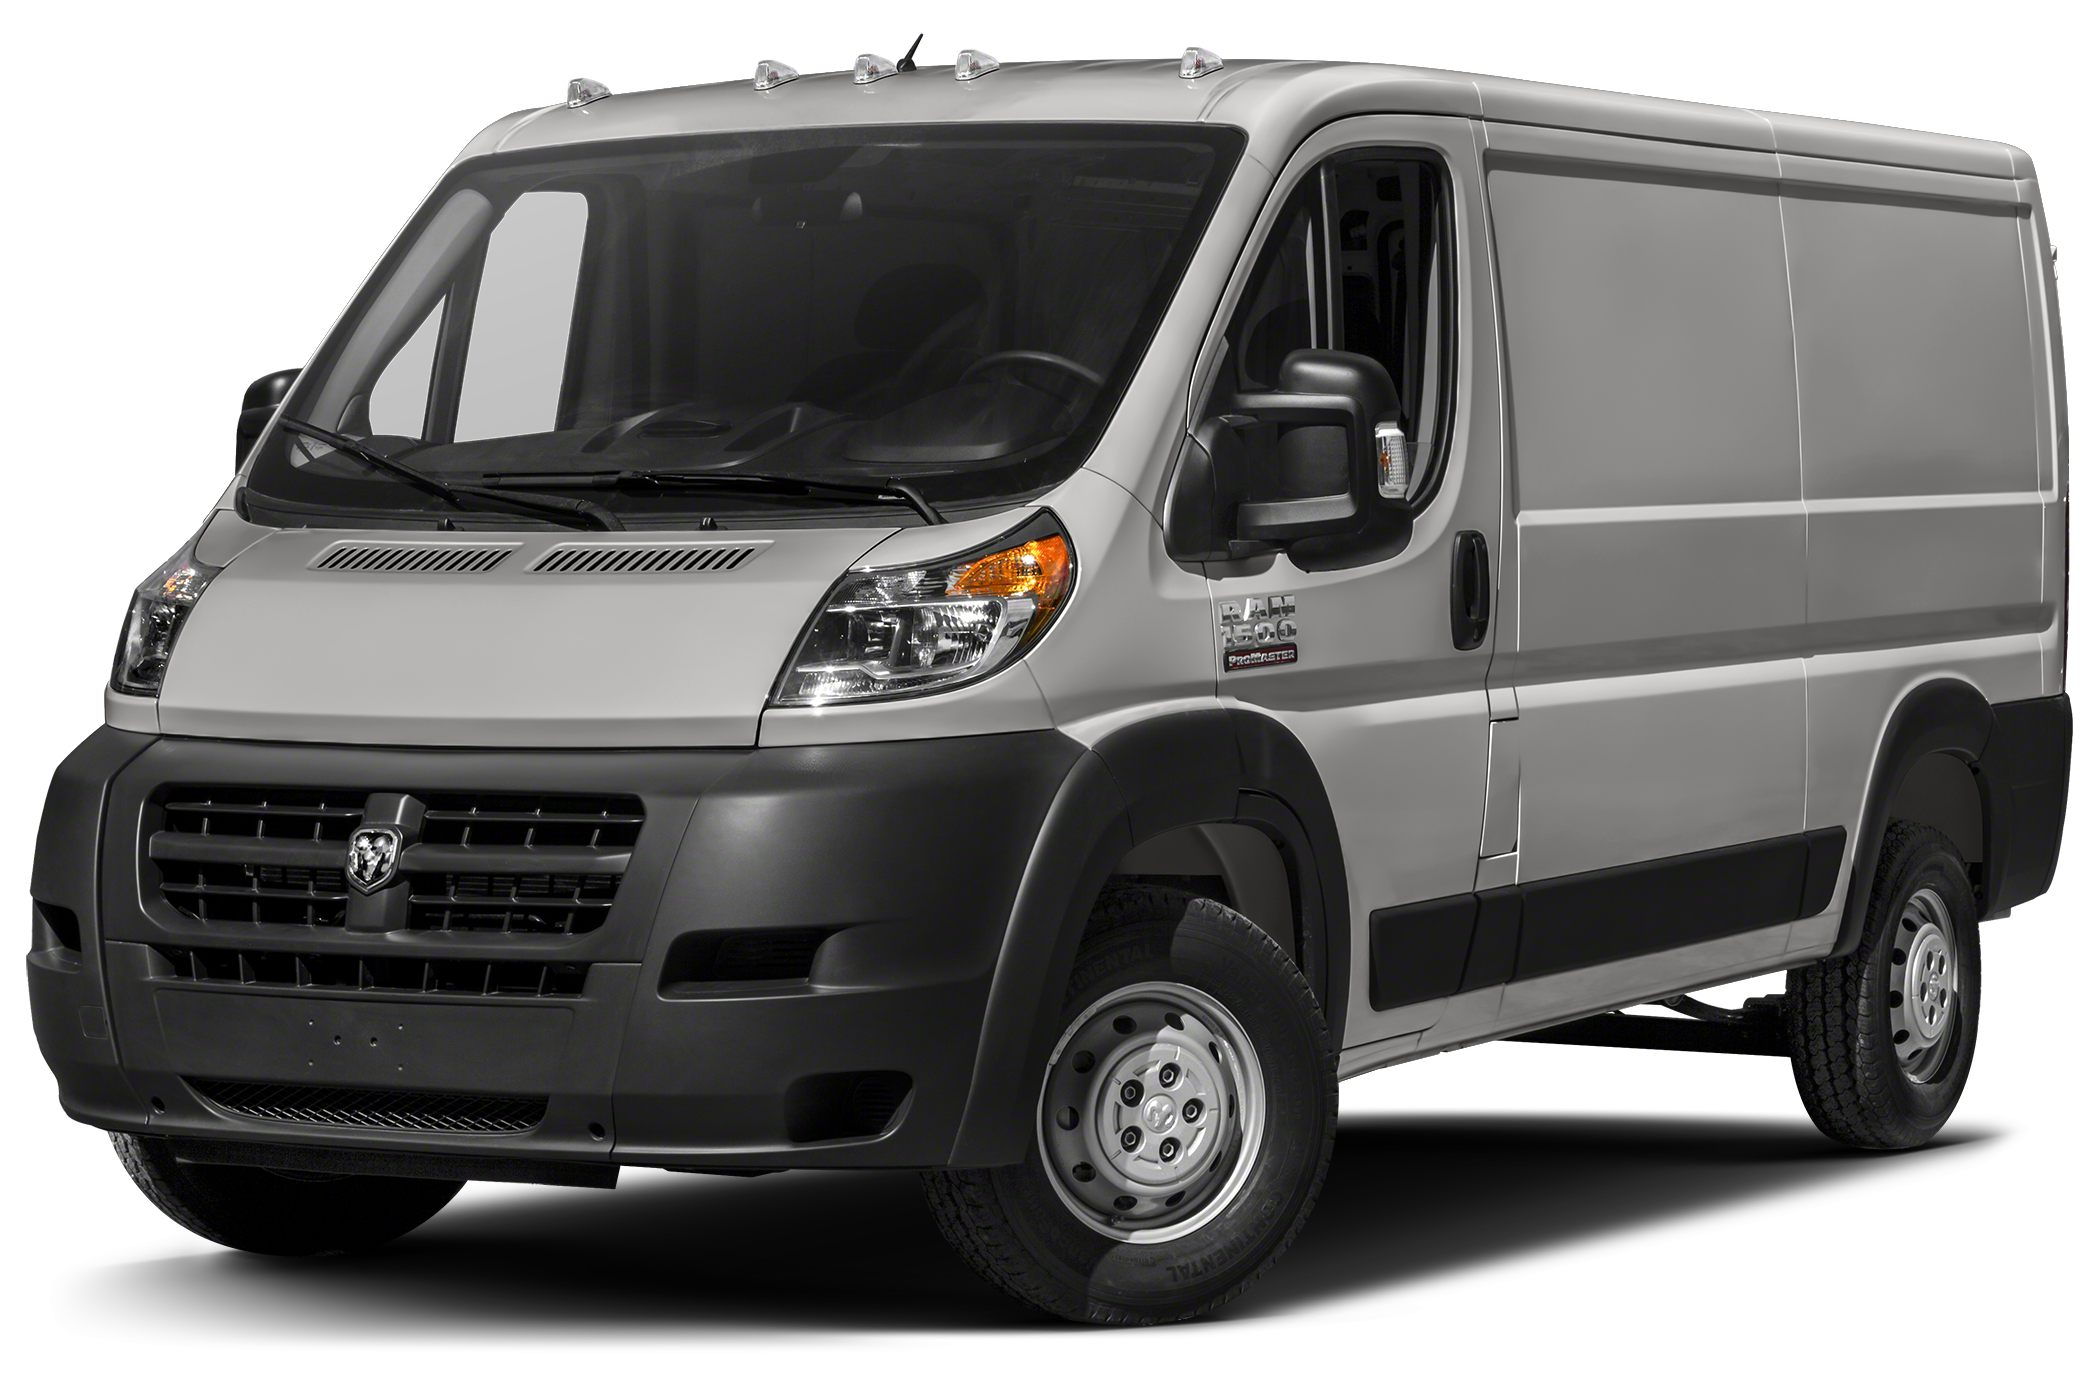 2014 Ram ProMaster 1500 Miles 18829Color Bright Silver Clearcoat Metallic Stock 118 VIN 3C6T